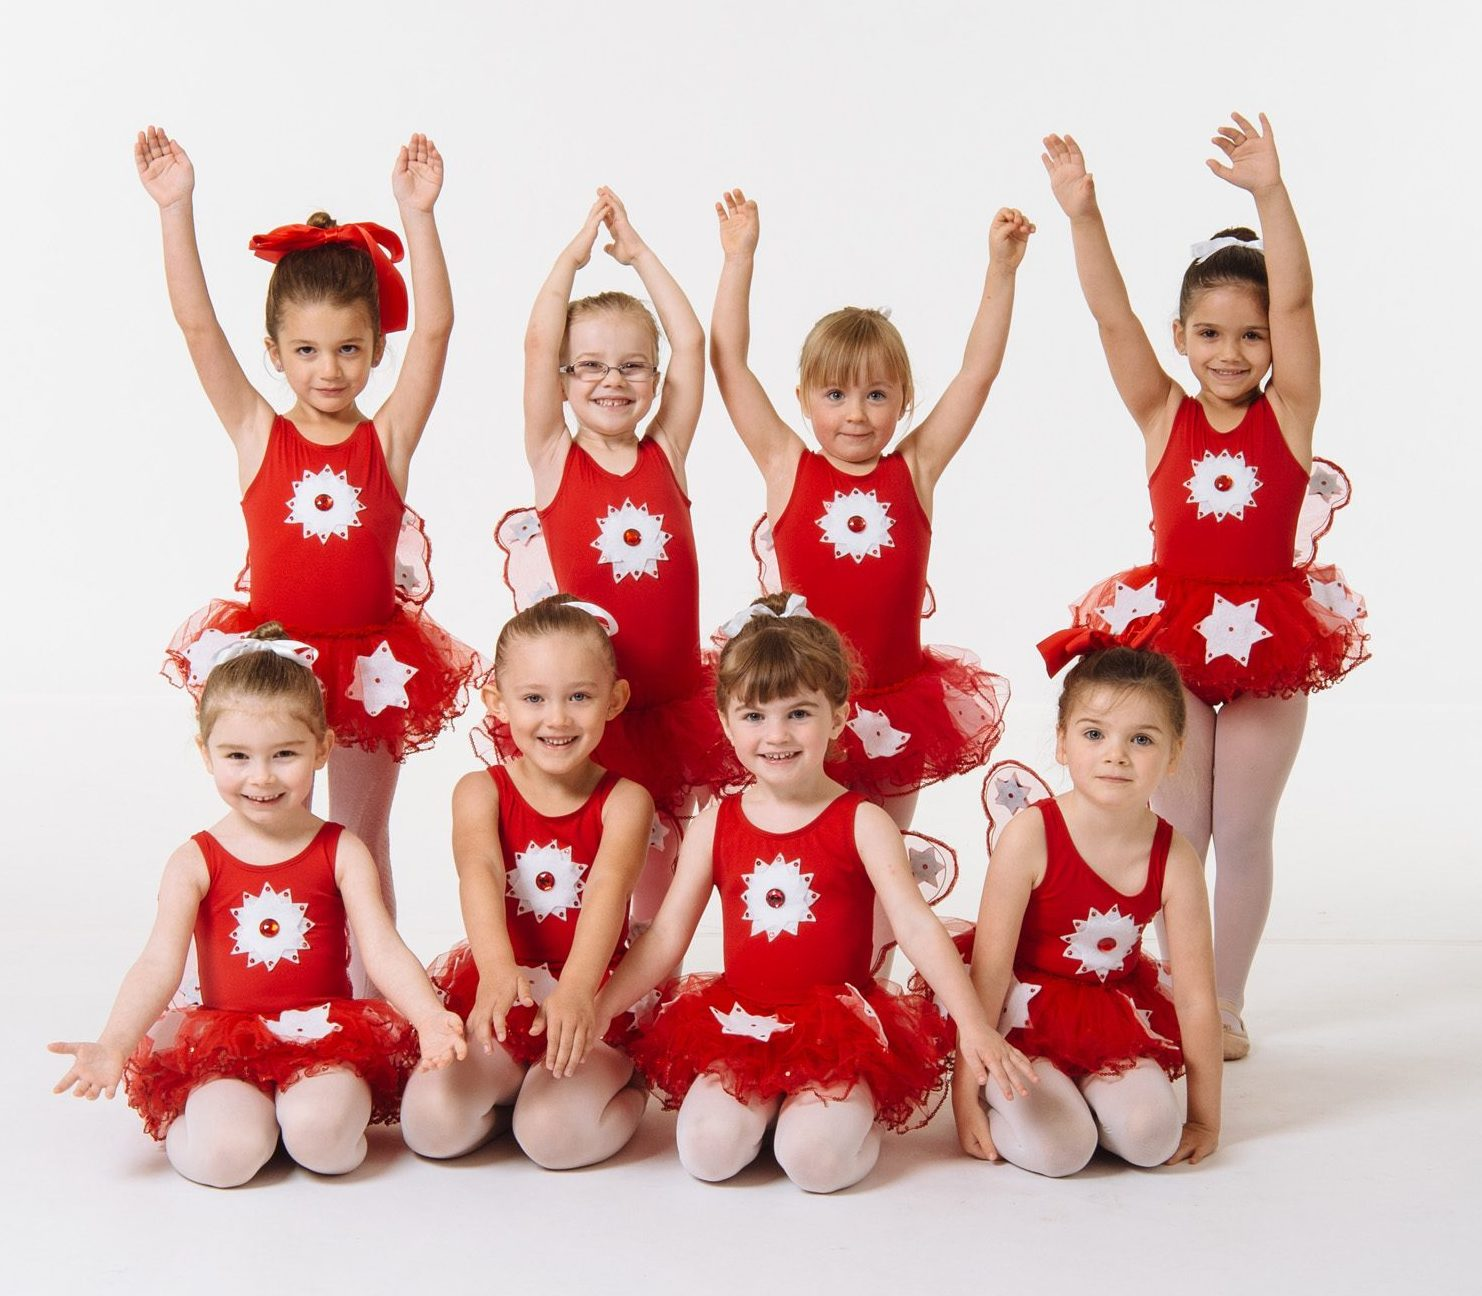 FVAD Pre-school dance class in red tutus with white stars. Photo by Revival Arts.